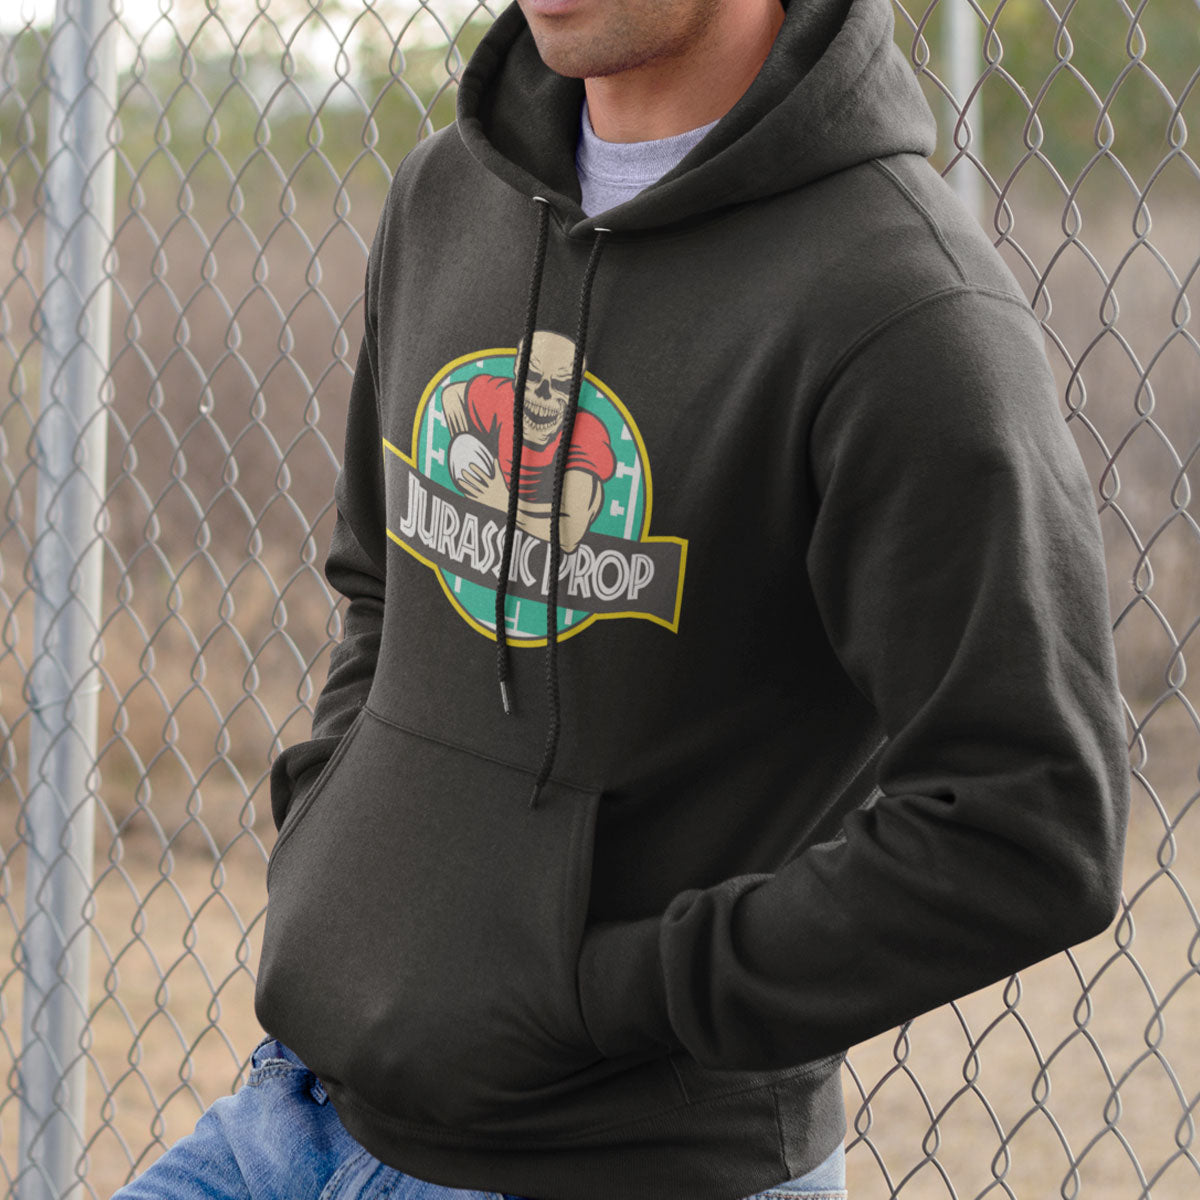 Jurassic Prop Rugby Hoody